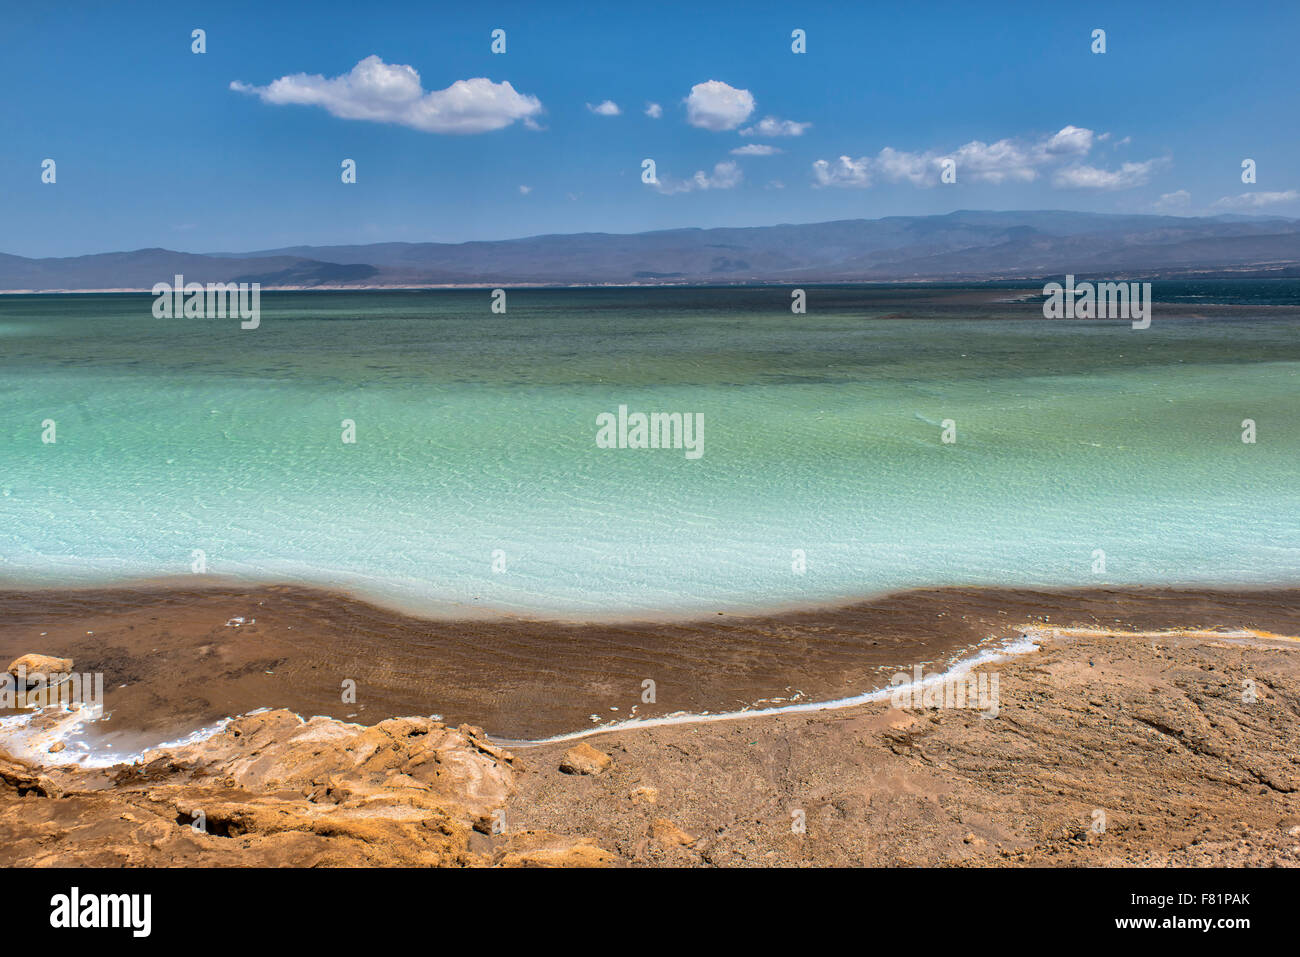 Lake Assal, Djibouti - Stock Image